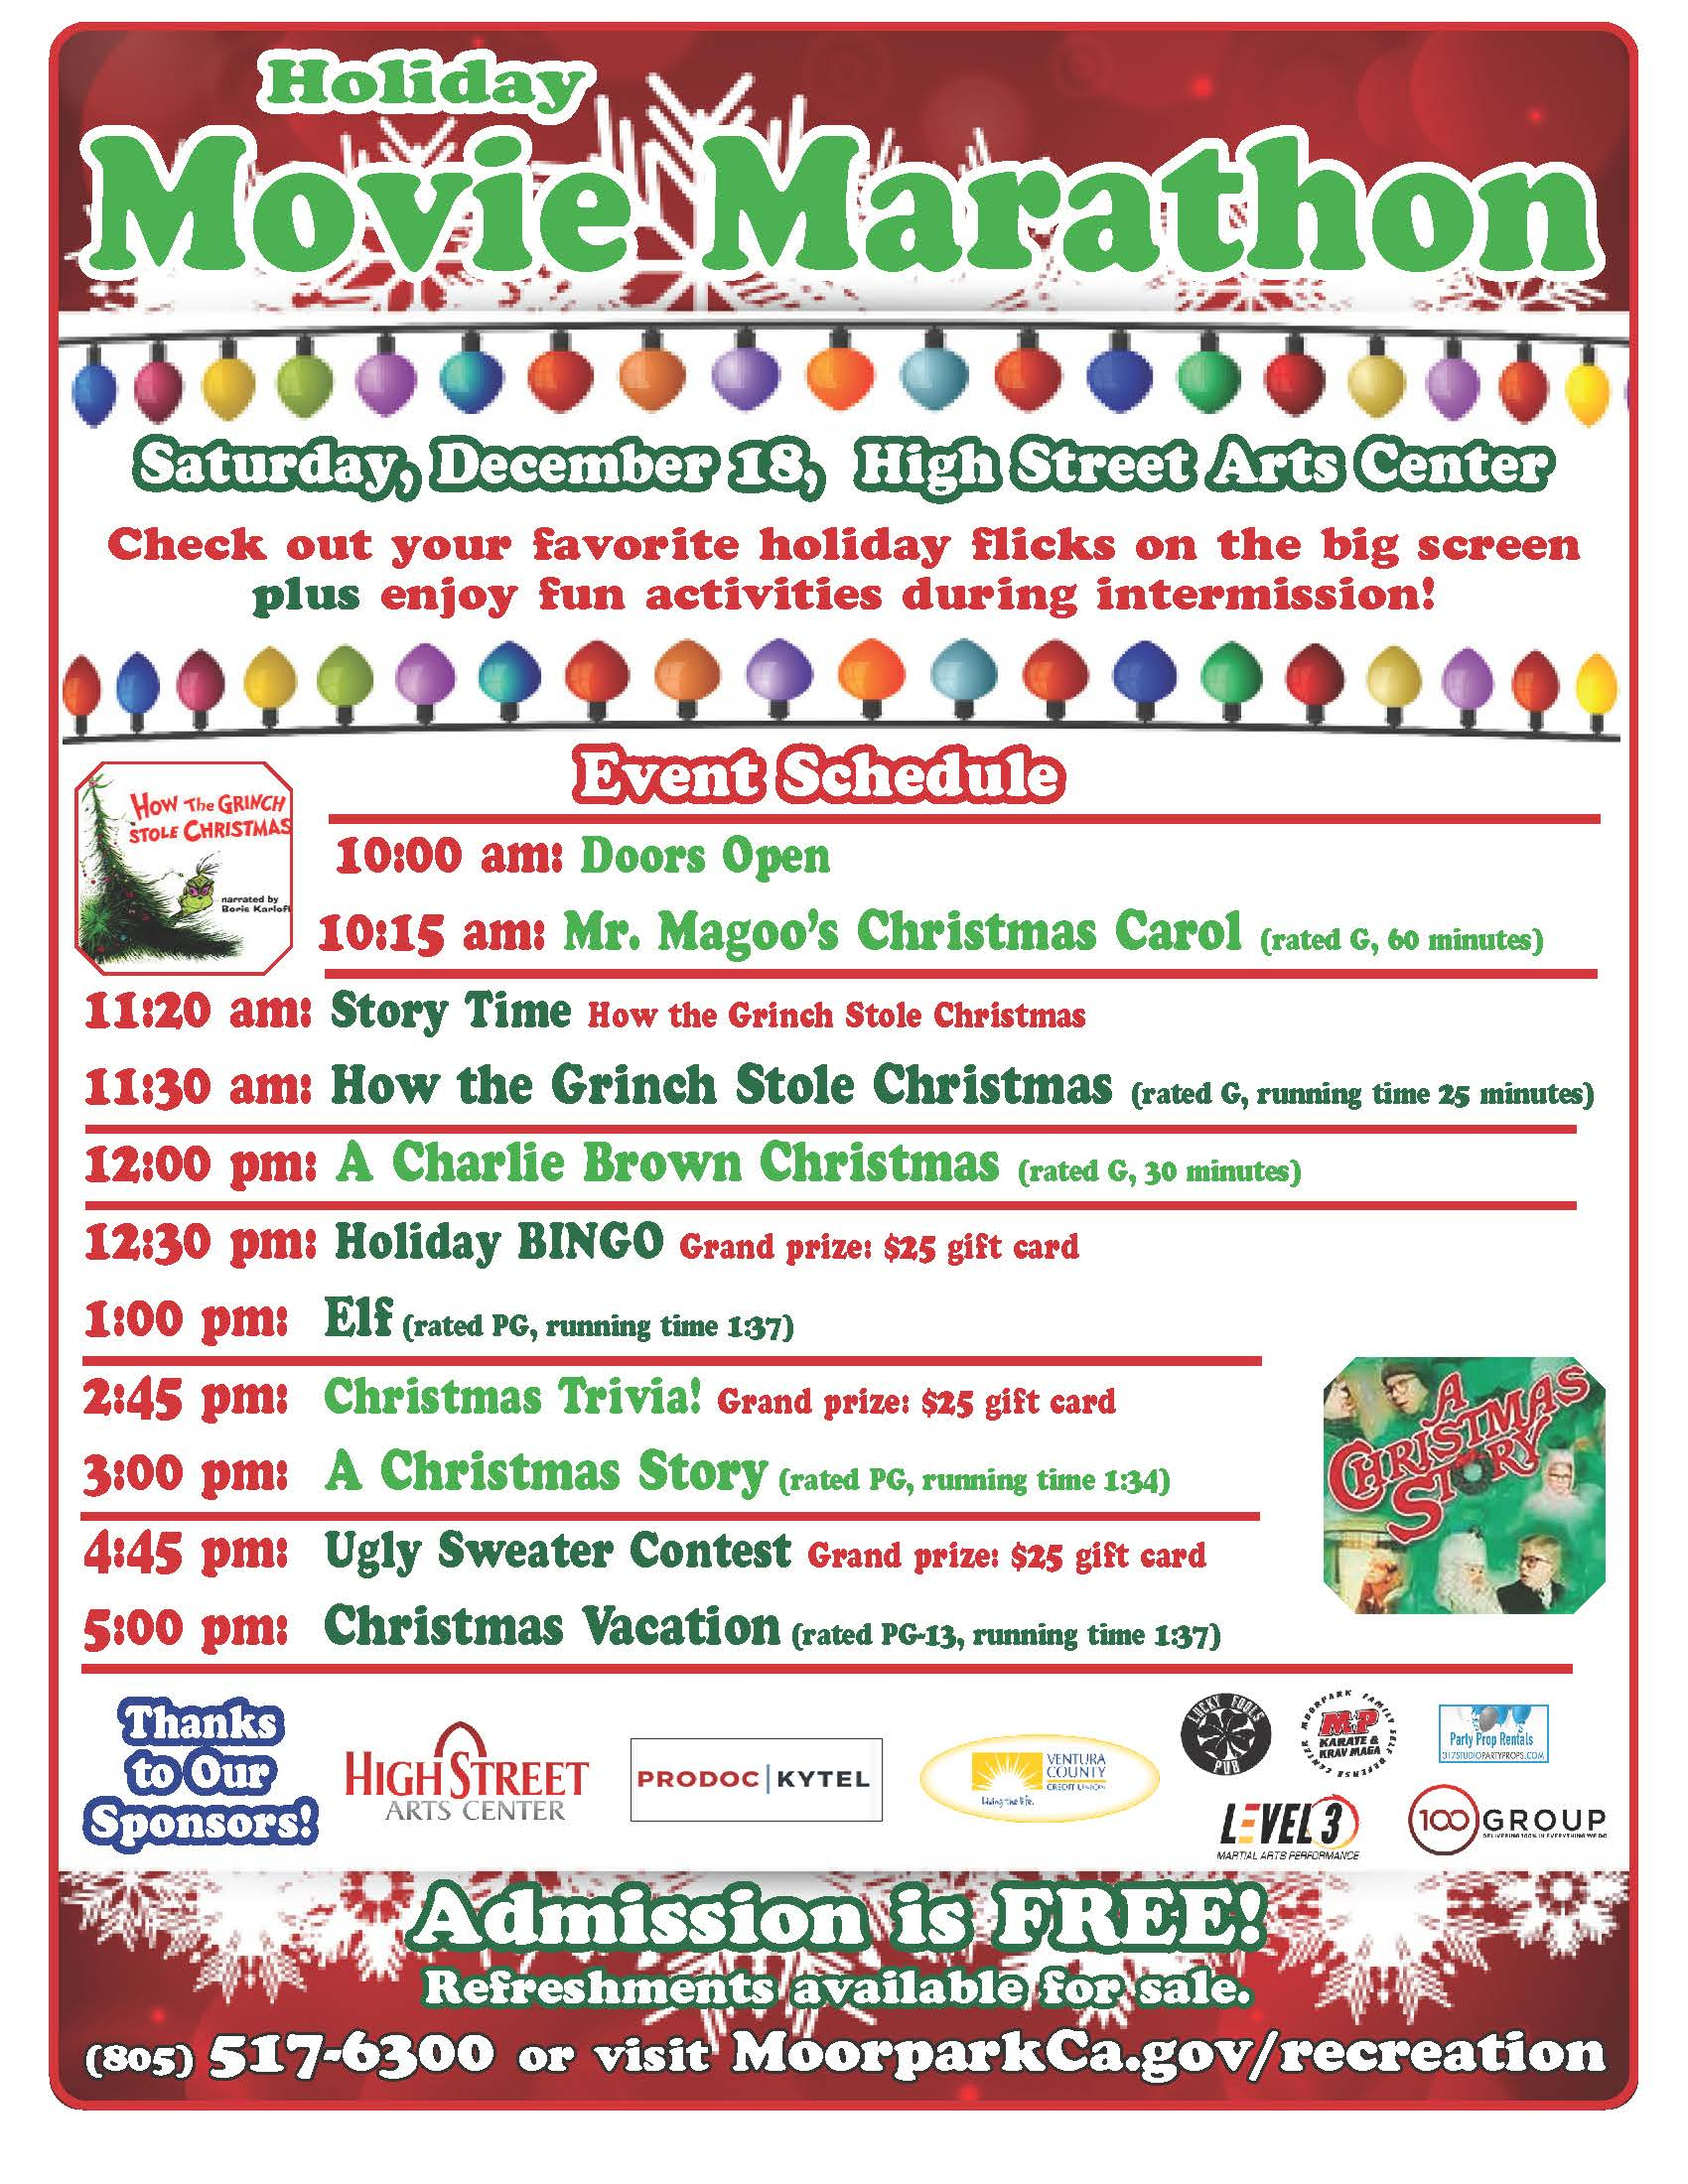 Holiday Movie Marathon Flyer 2019